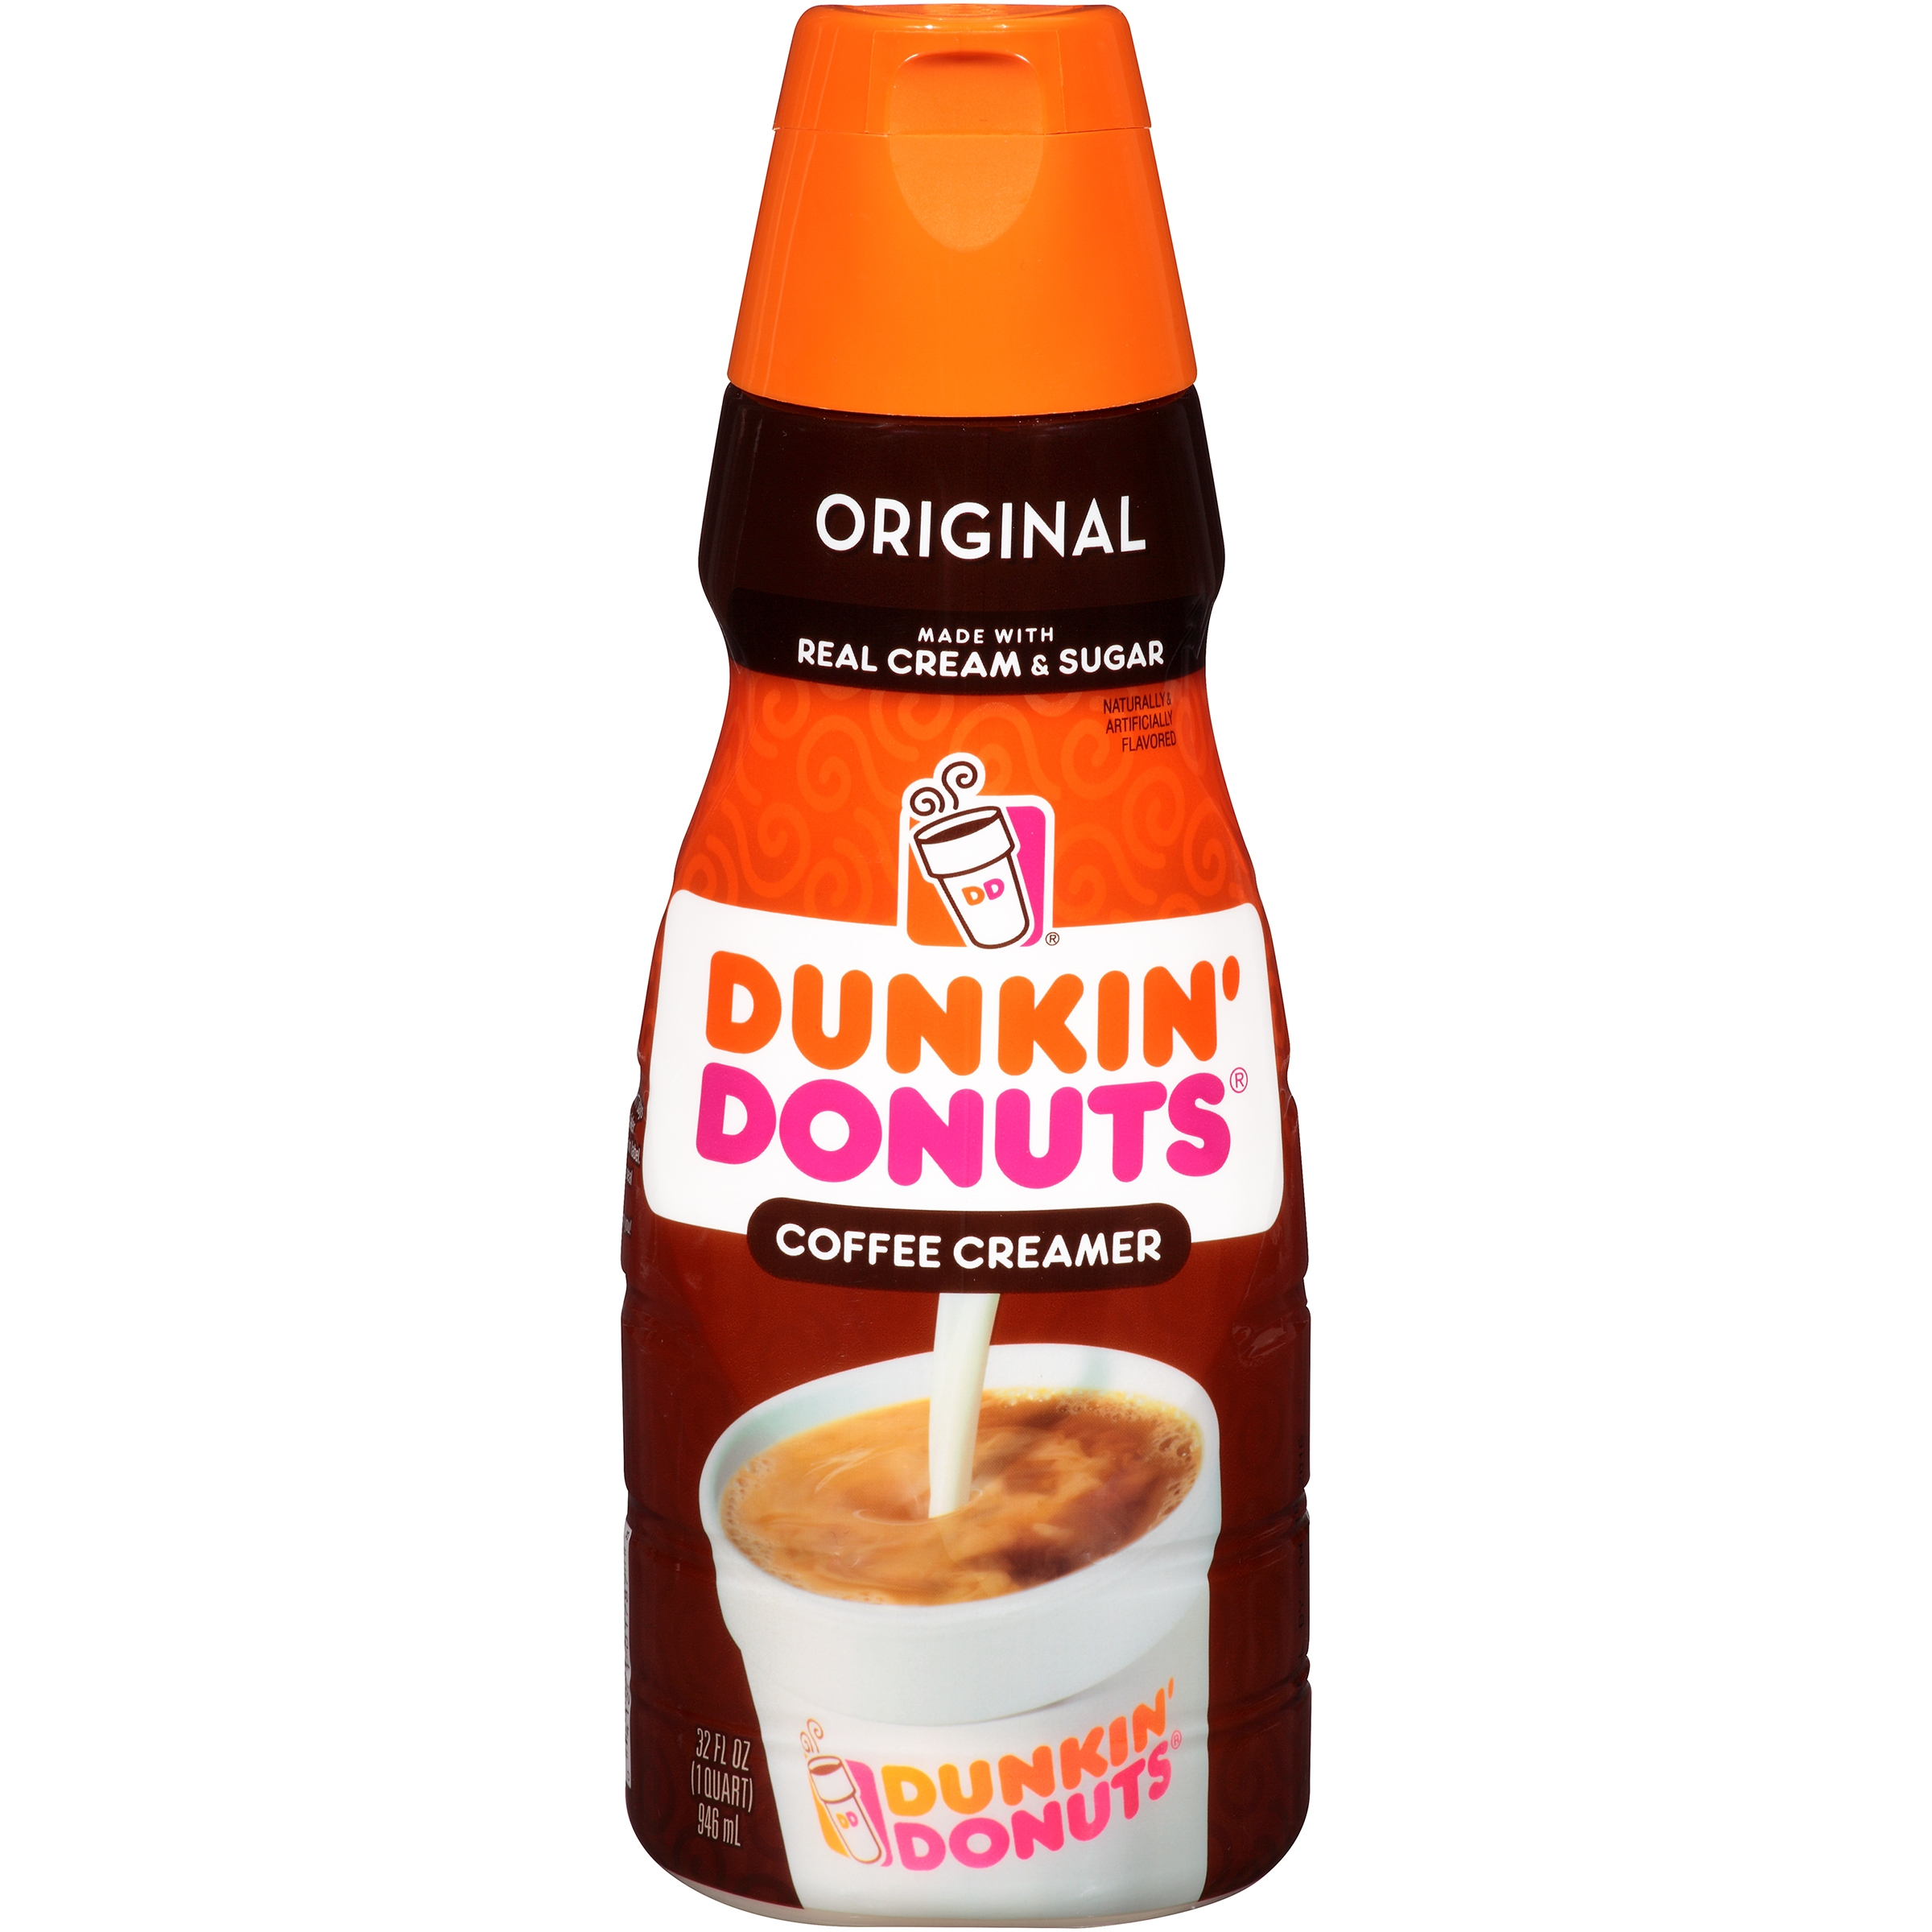 Dunkin' Donuts Original Coffee Creamer, Quart